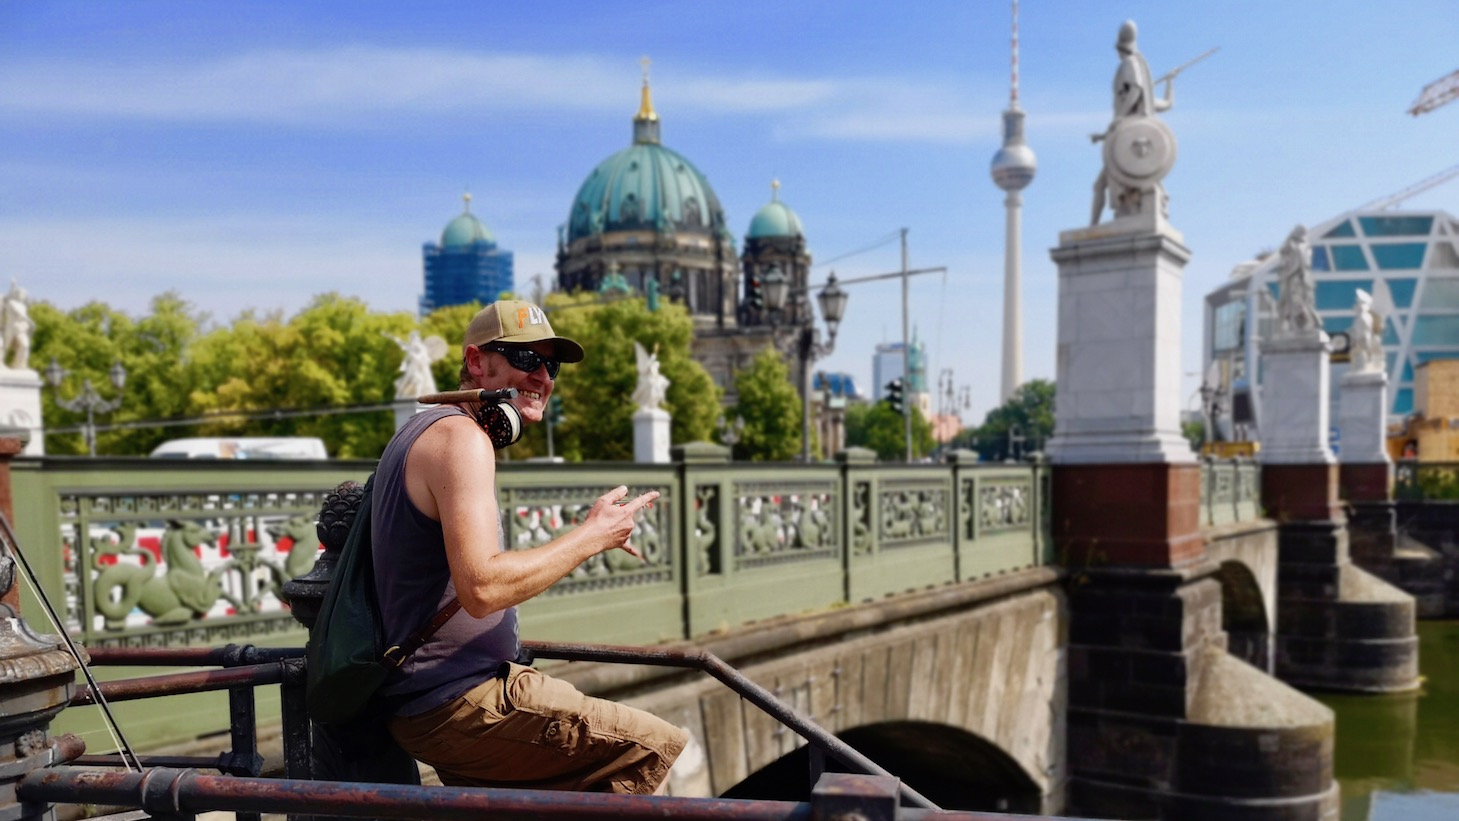 Berlin fly fishing, fly fishing Germany, urban fly fishing